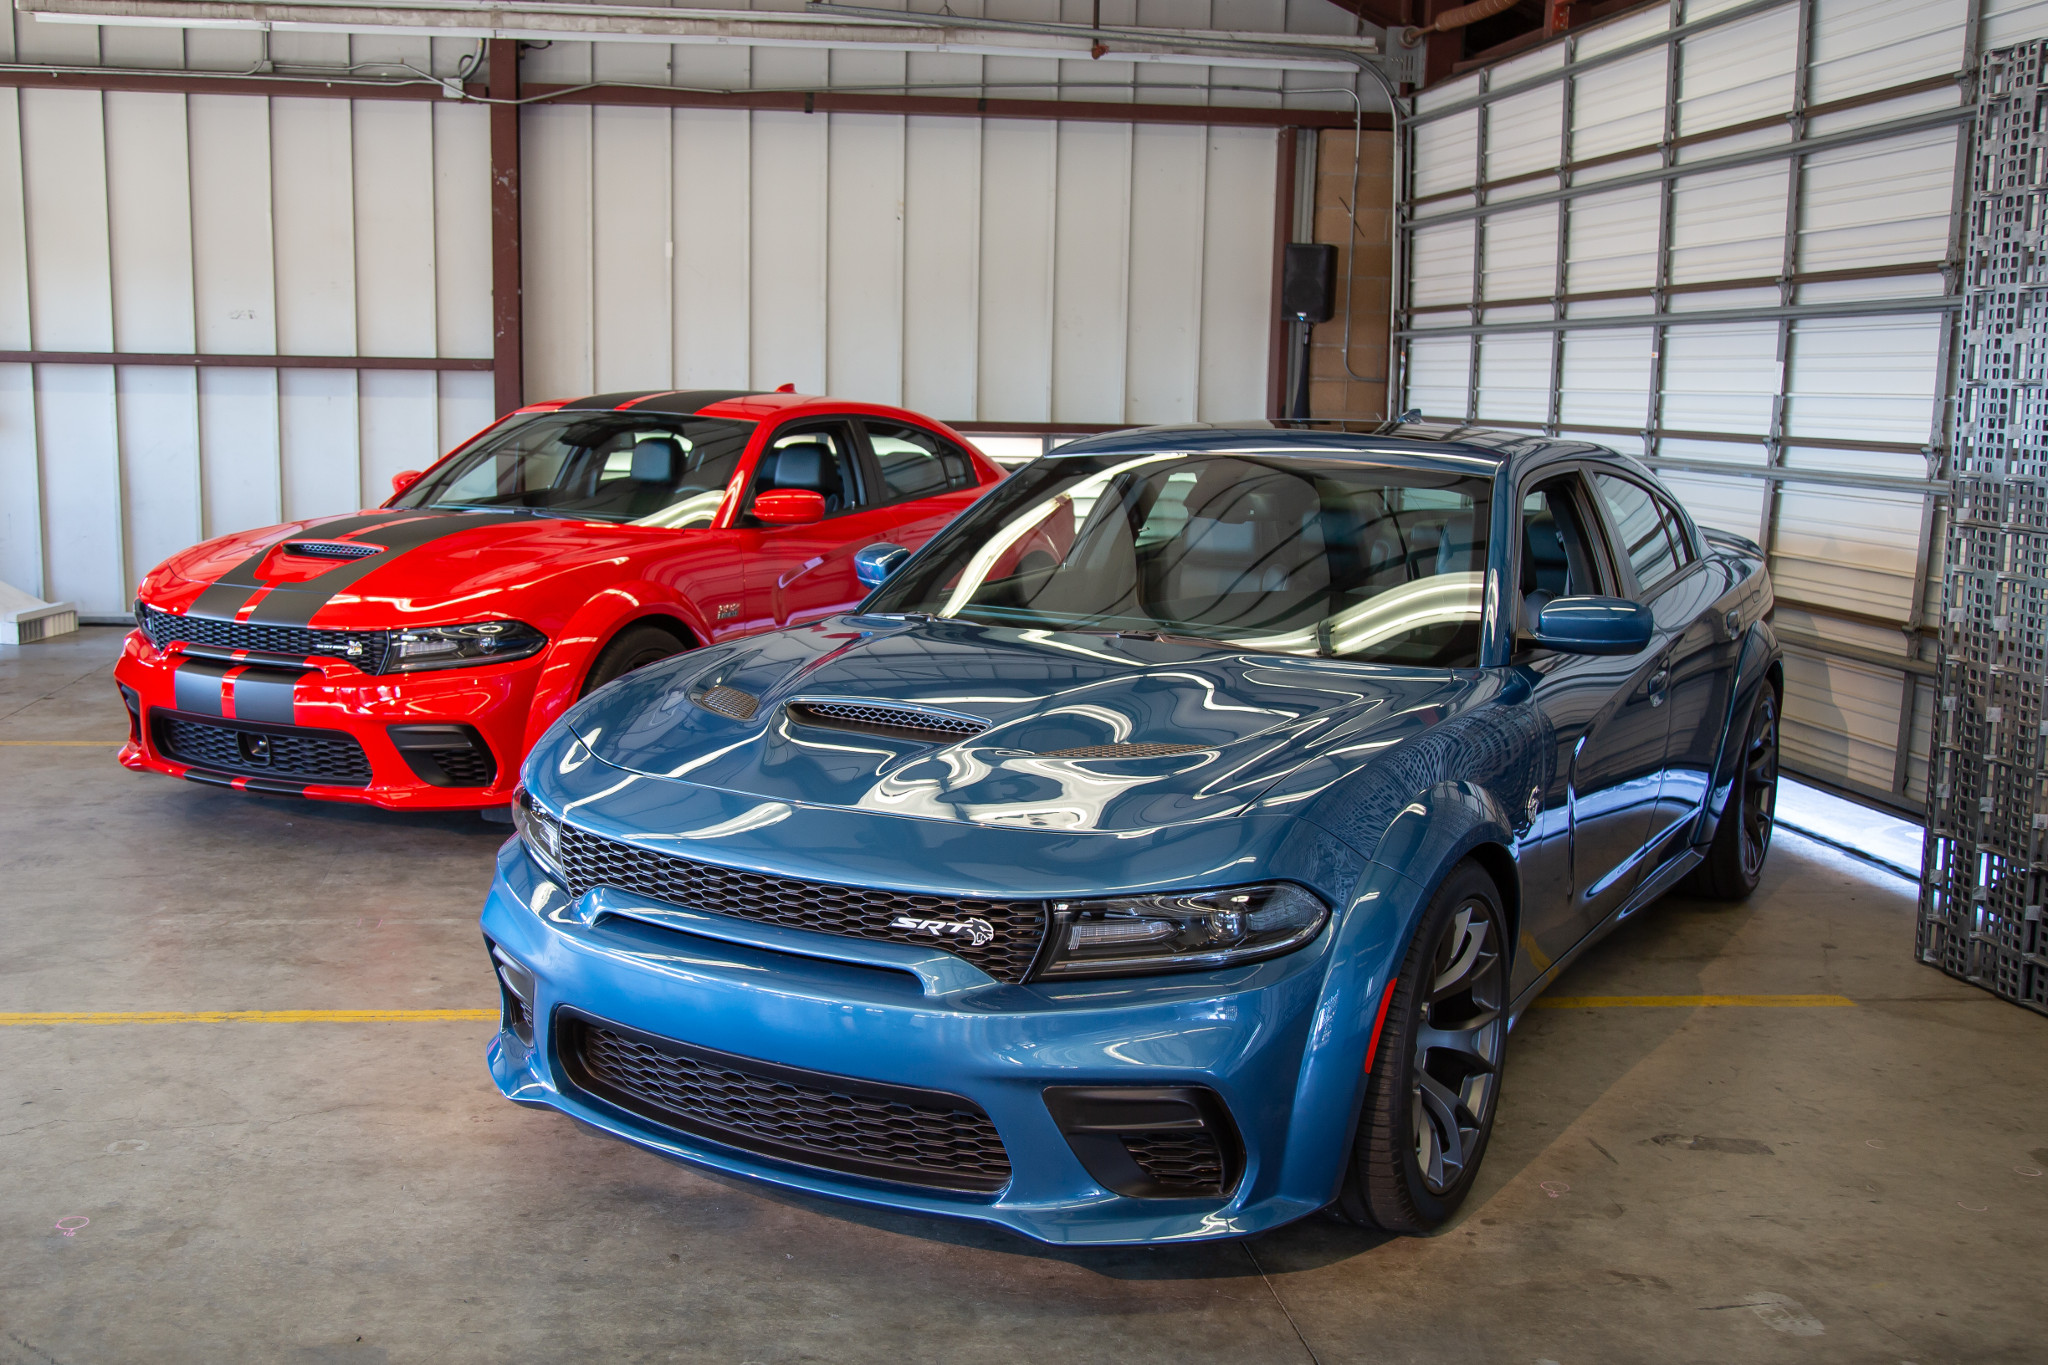 2020 Dodge Charger Scat Pack And Hellcat Widebody 7 Pros And 3 Cons News Cars Com